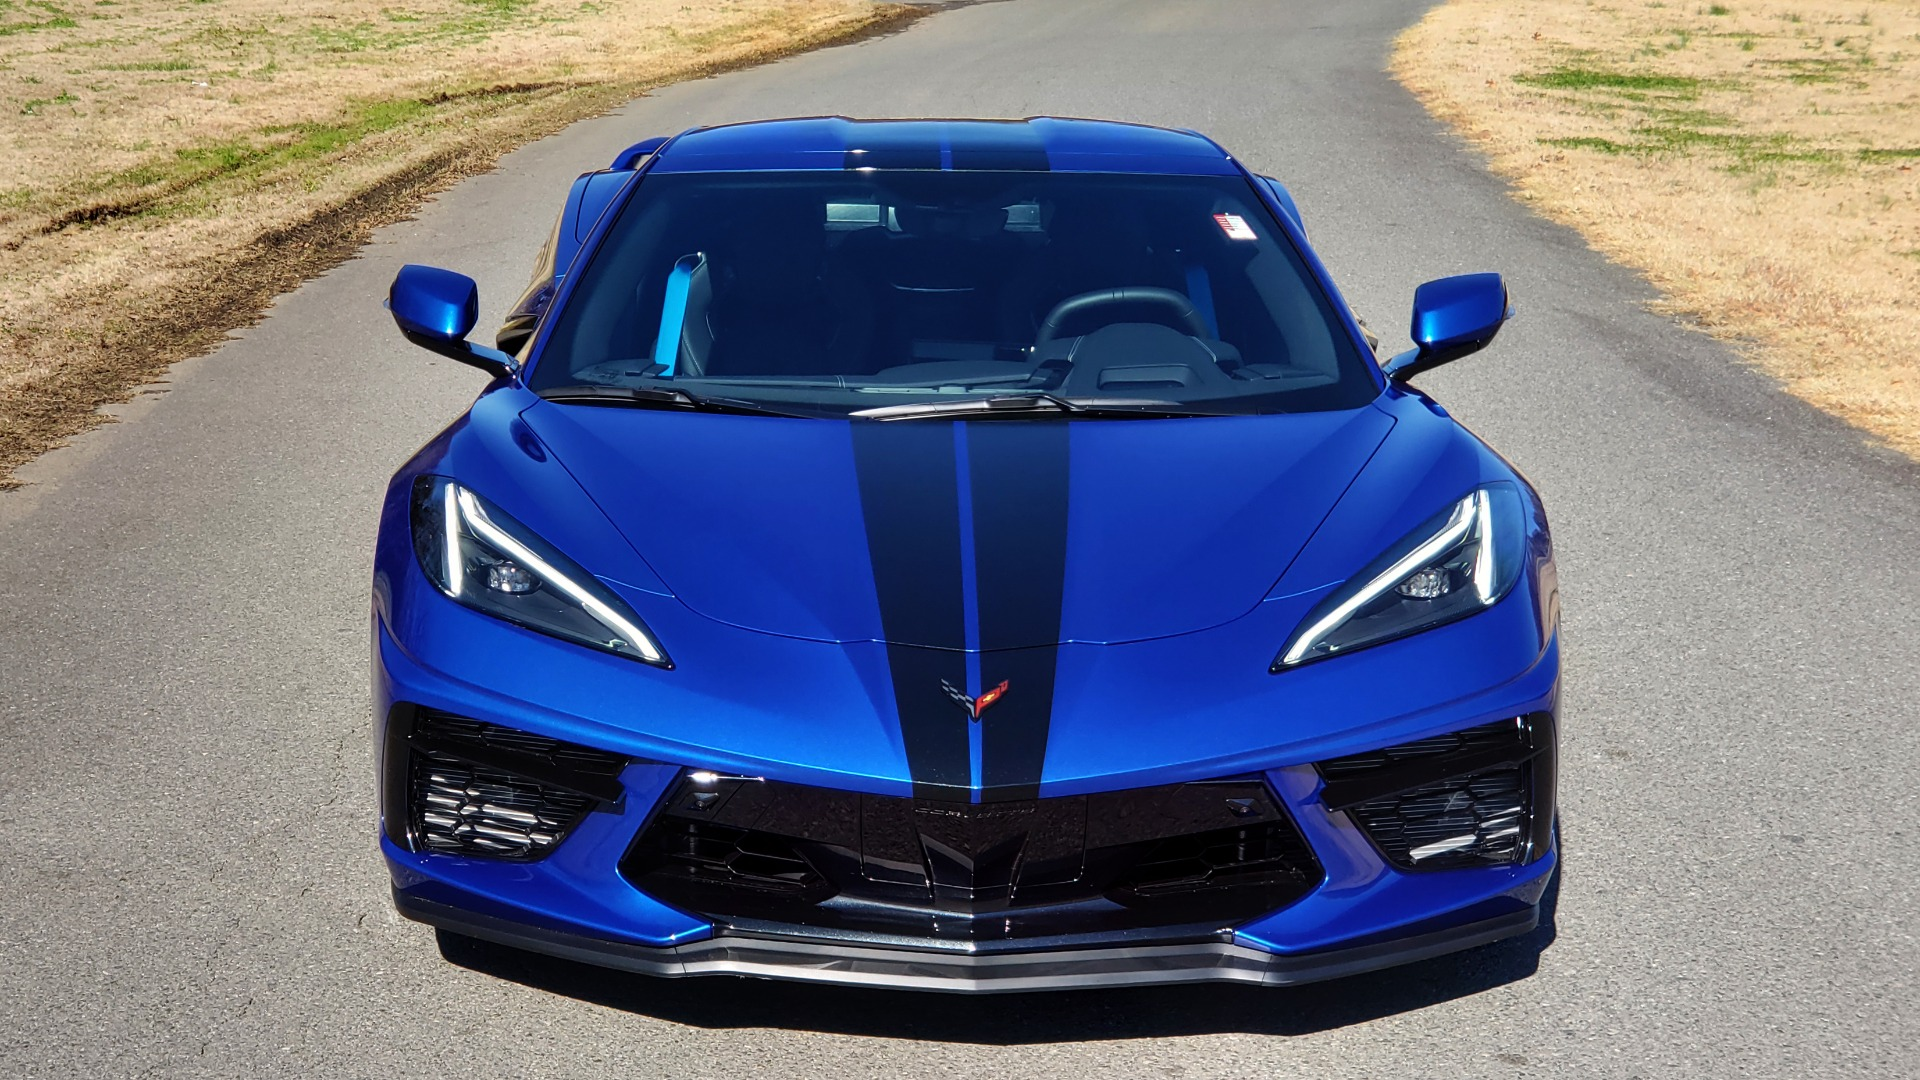 Used 2020 Chevrolet C8 CORVETTE STINGRAY 2LT COUPE / NAV / HUD / BOSE / GT2 SEATS / FRONT LIFT / REARVIEW for sale Sold at Formula Imports in Charlotte NC 28227 9